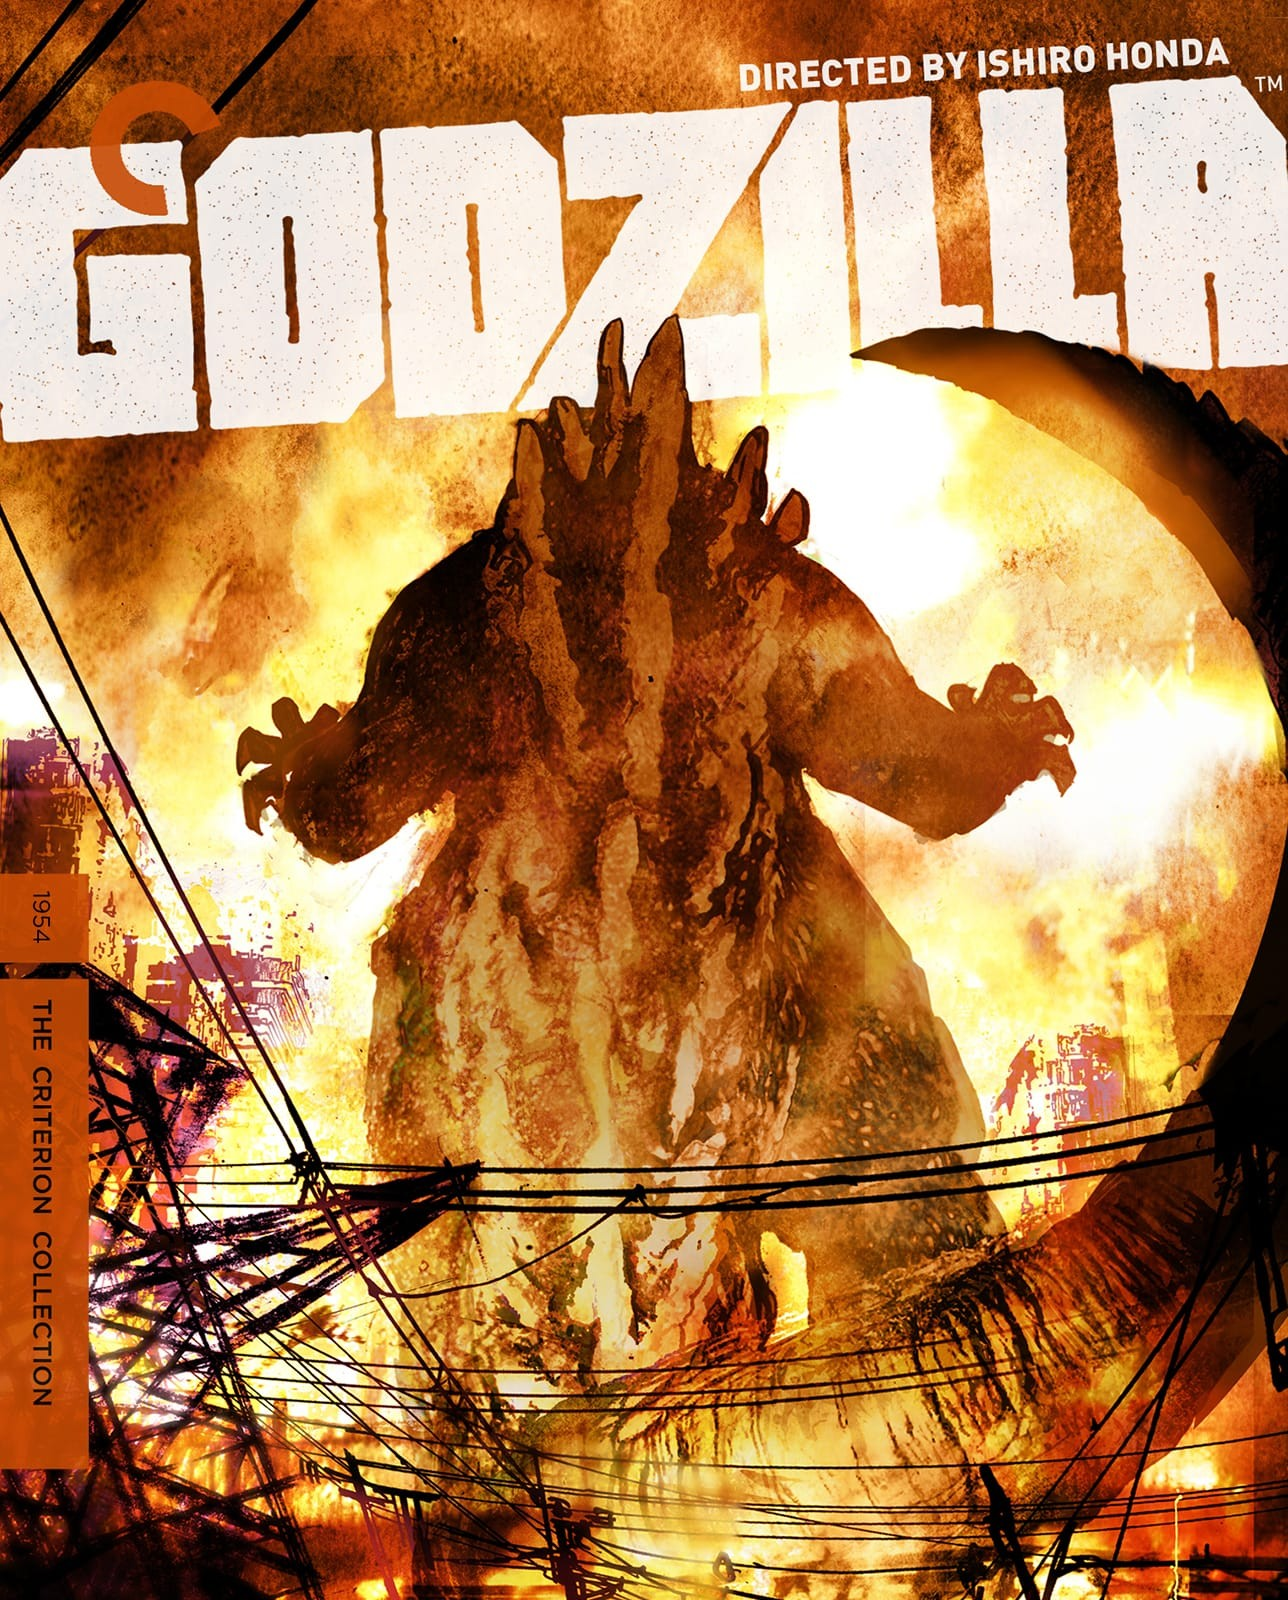 Godzilla (1954) | The Criterion Collection